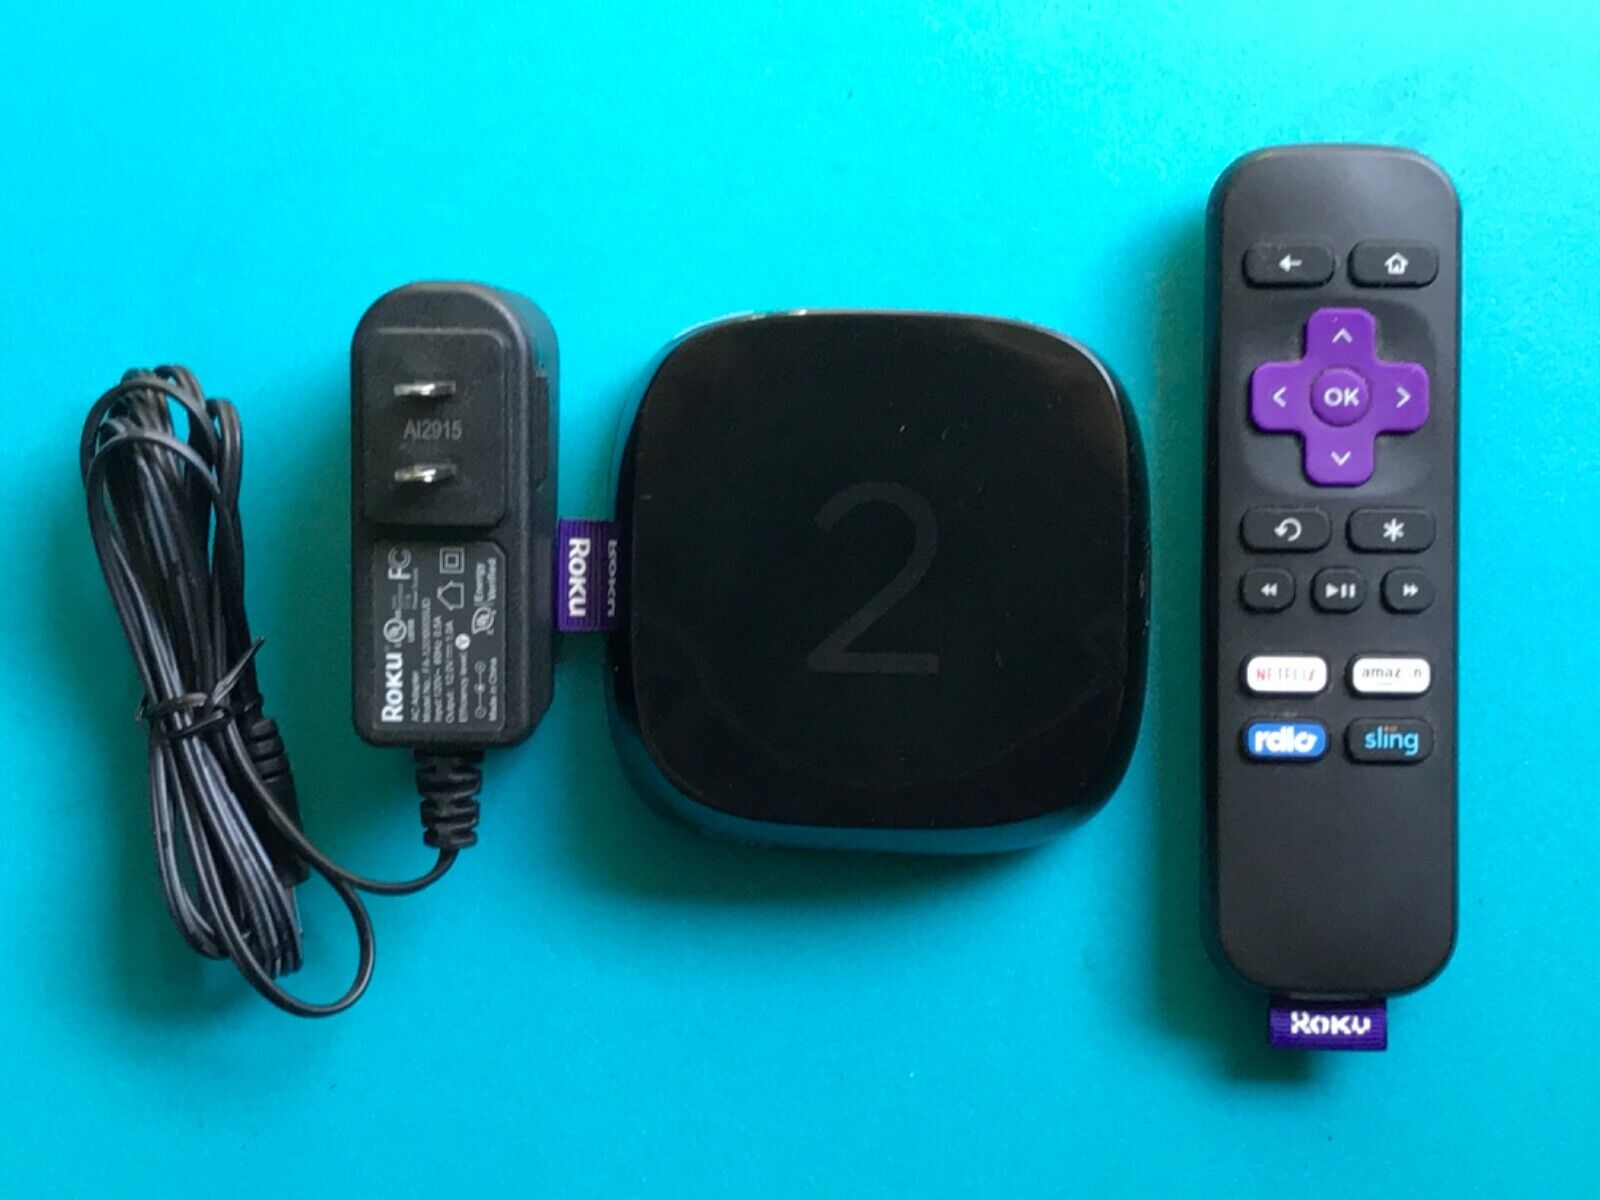 Roku 2 Streaming Player 4210X HD With Remote - Black Works Very Well - $14.99